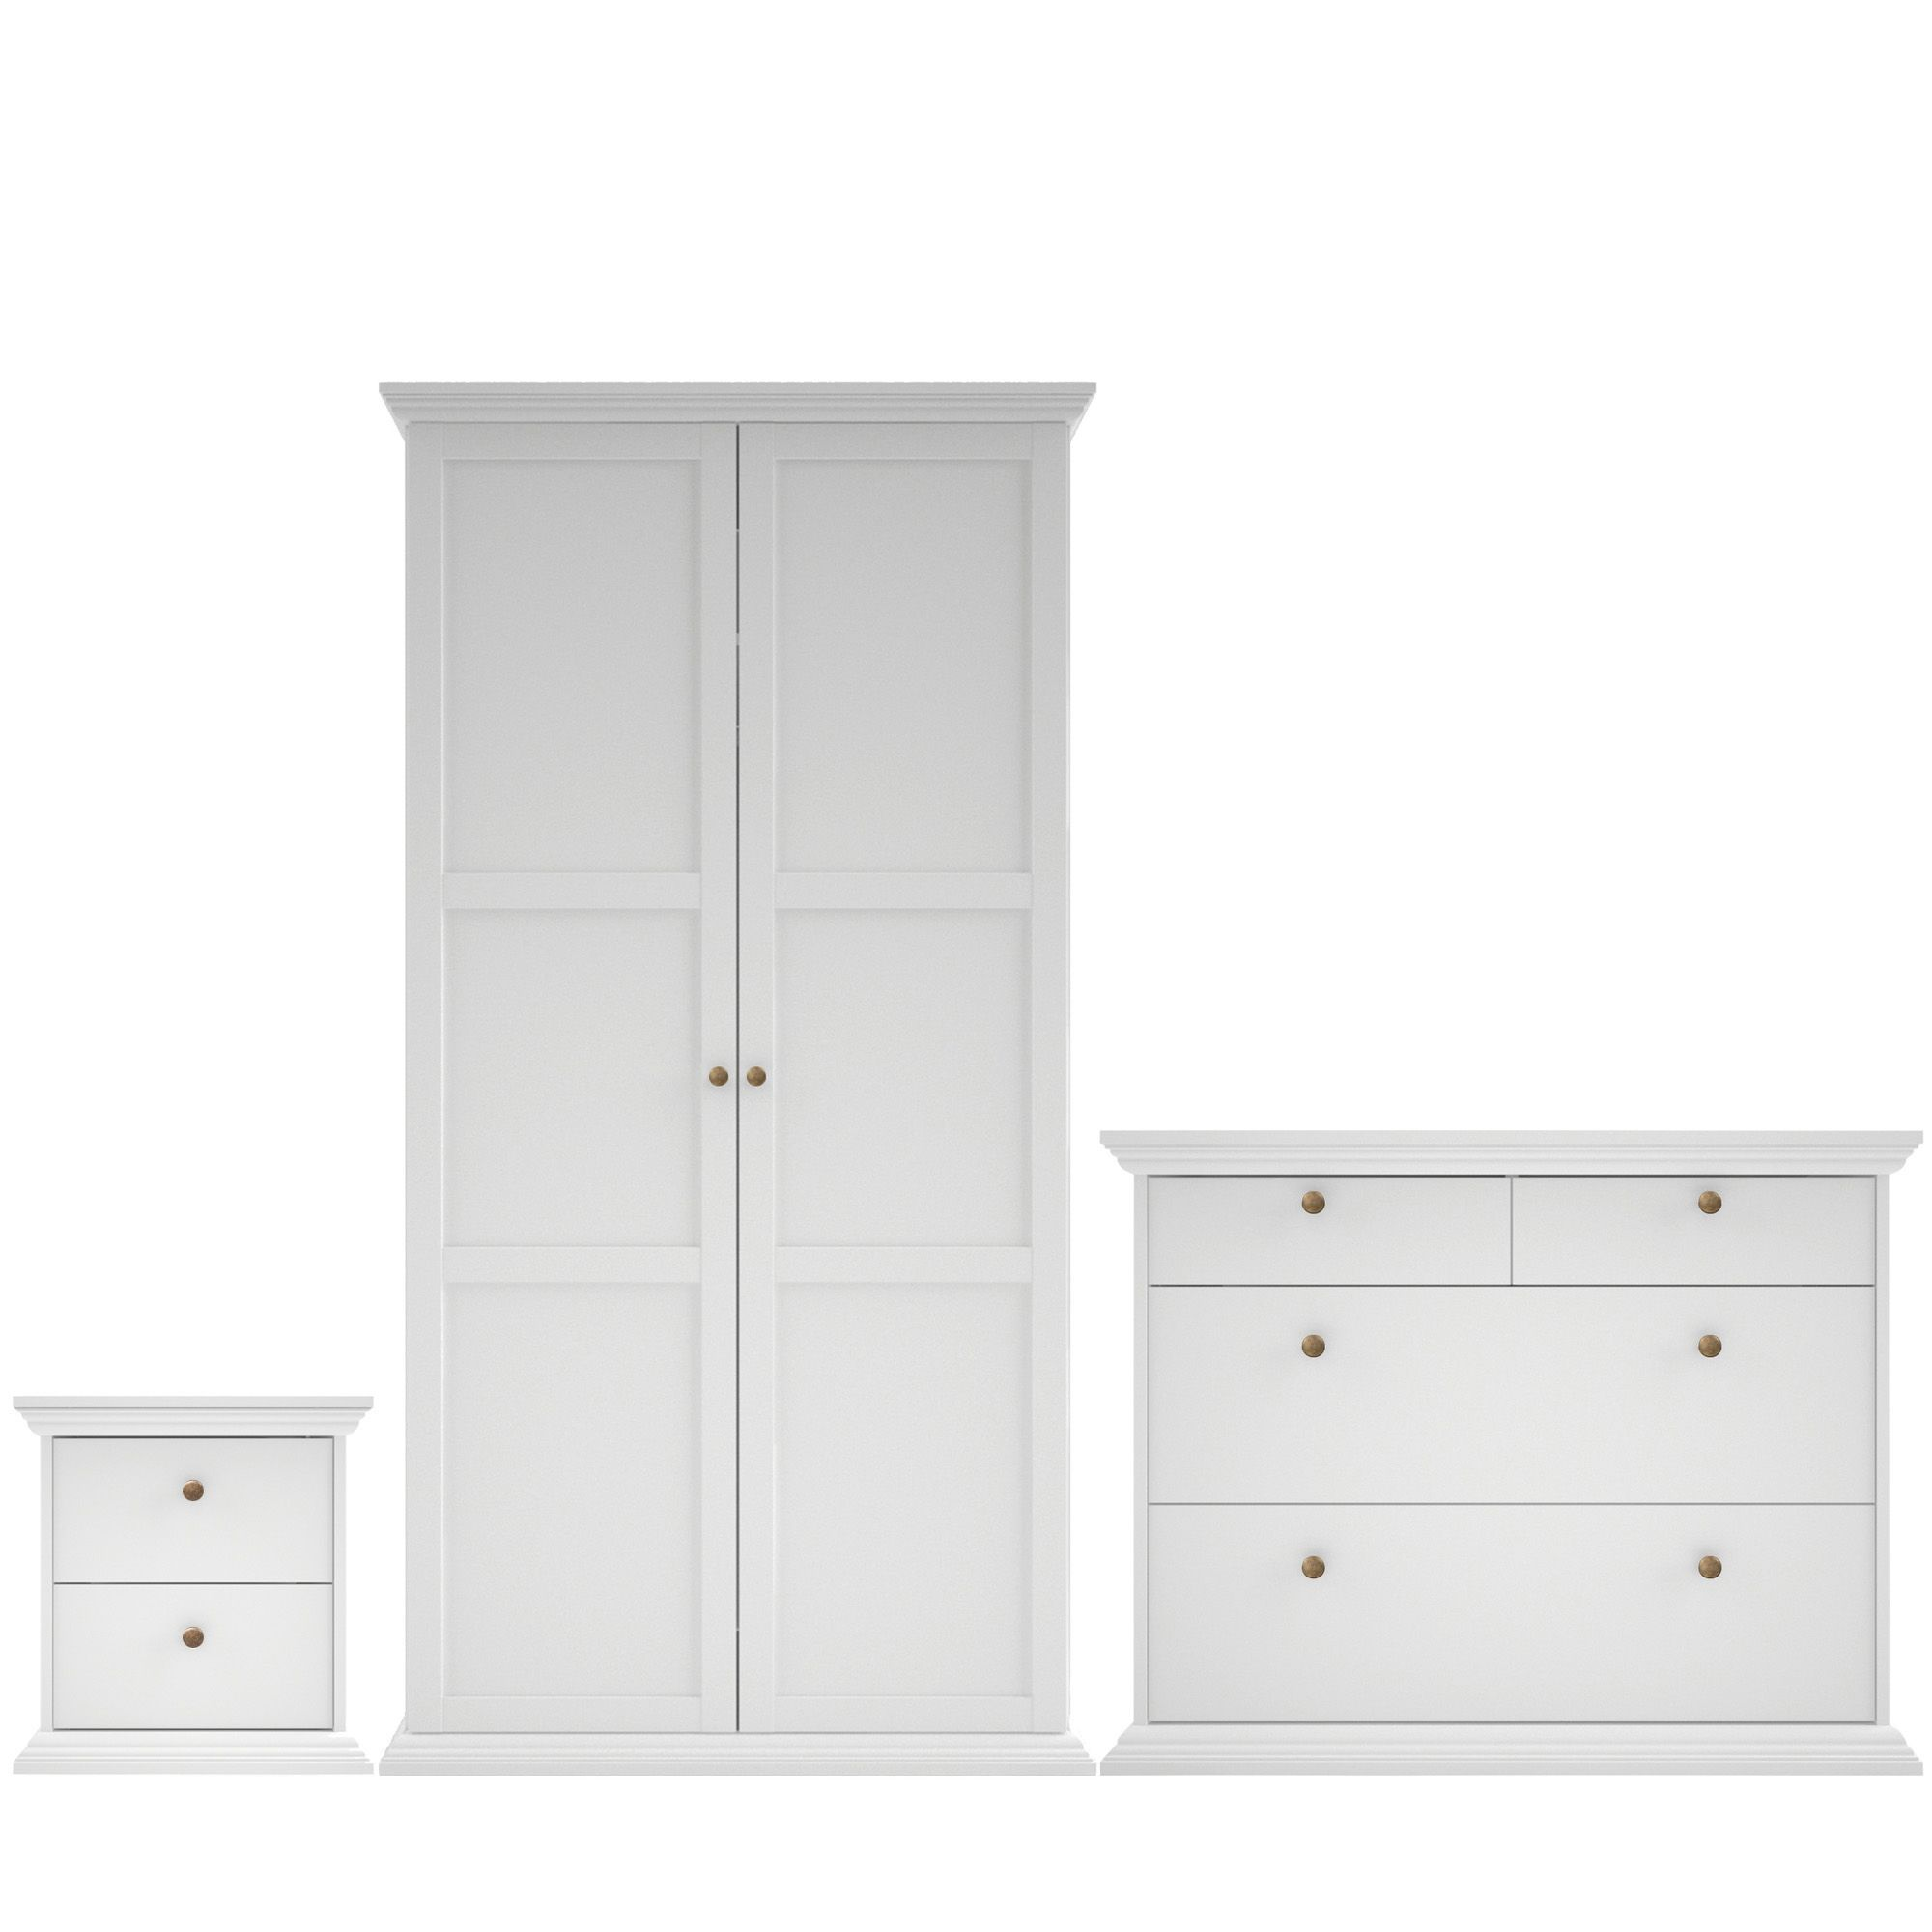 Isabella white matt 3 piece bedroom furniture set for B q bedroom furniture sets